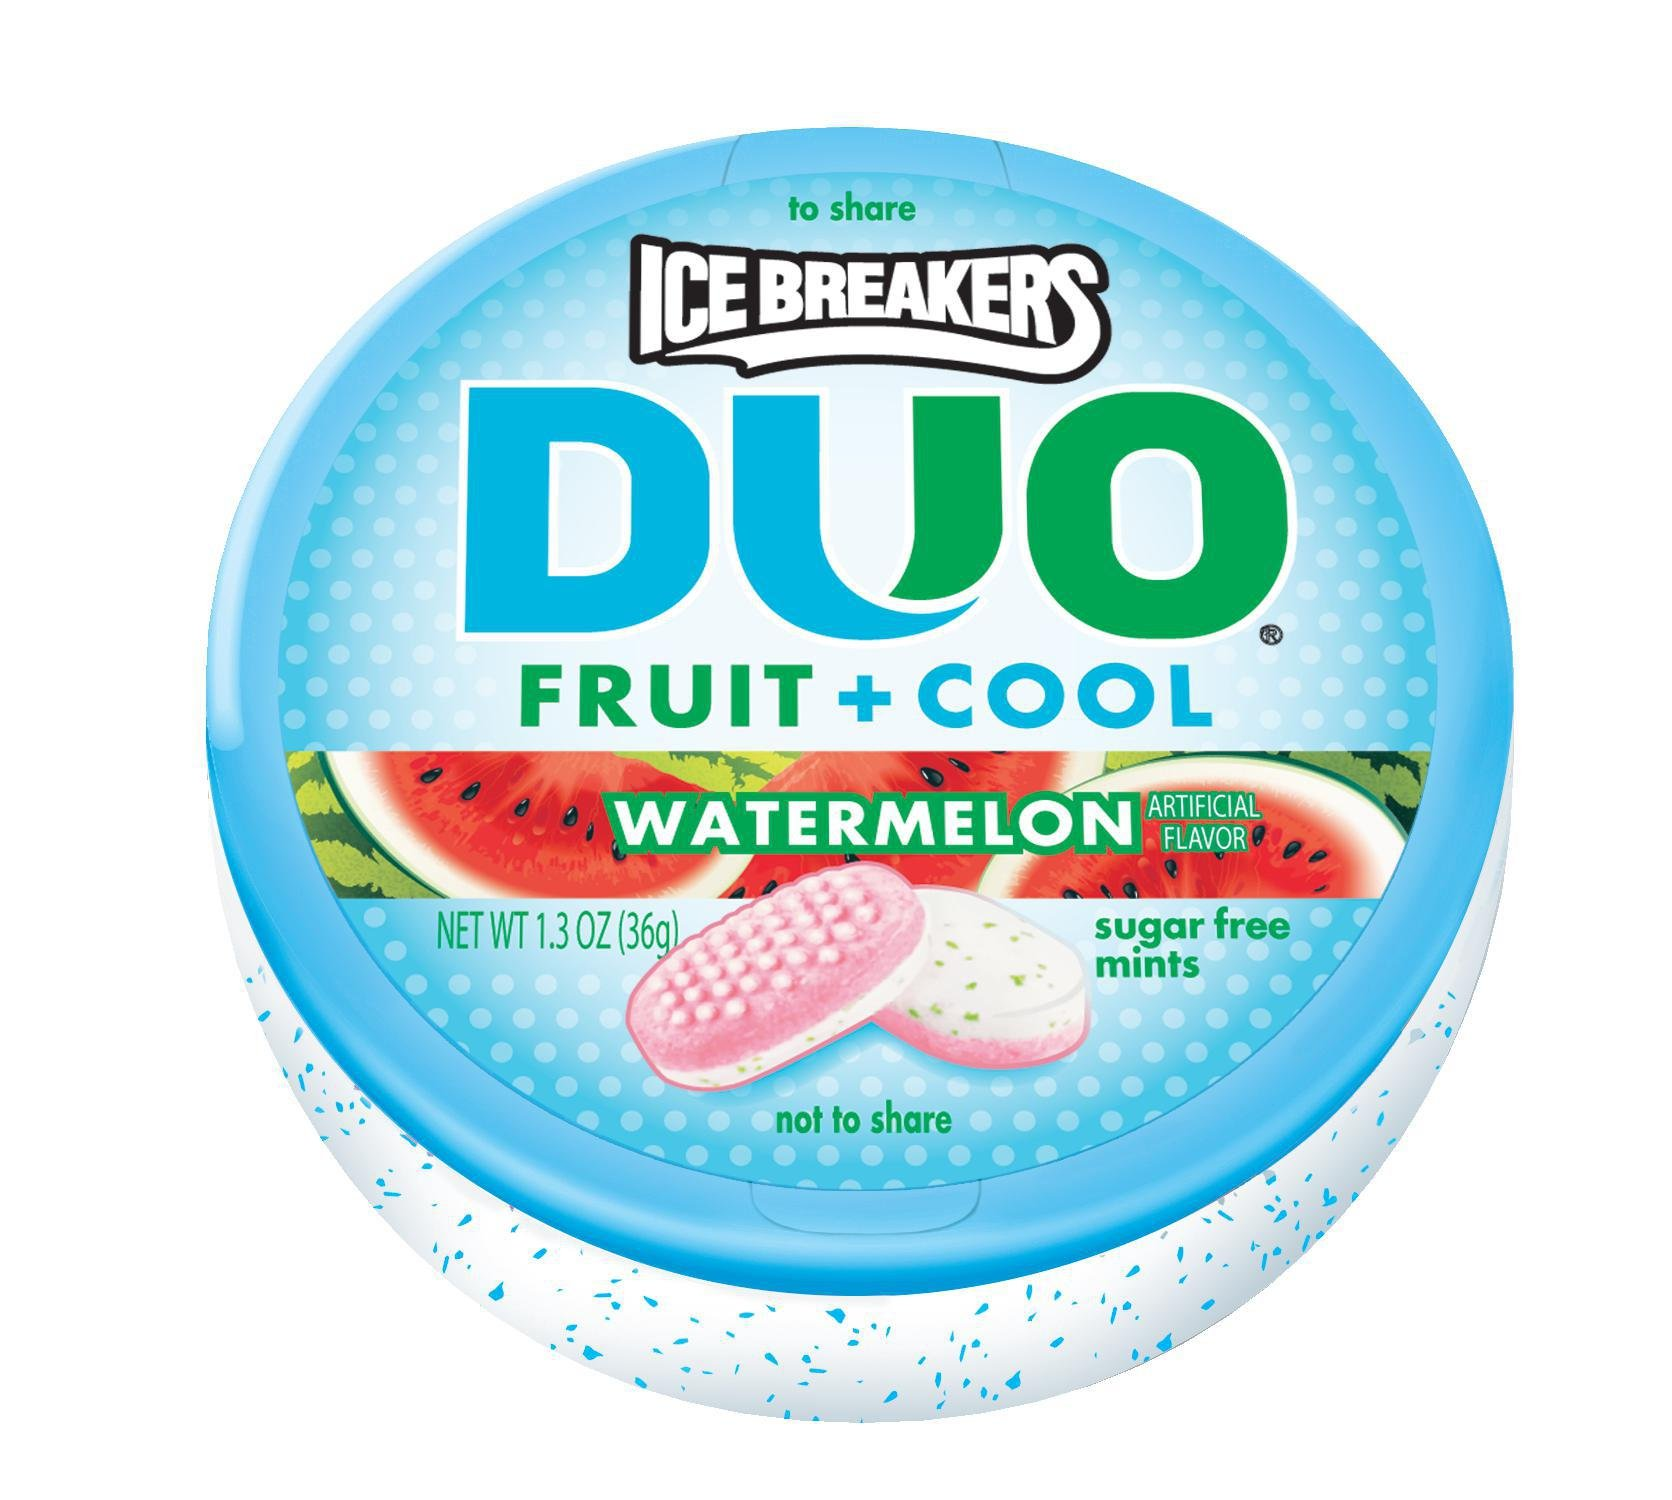 ICE BREAKERS DUO Fruit + Cool Sugar Free Mints (Watermelon, 1.3-Ounce Containers, Pack of 24)